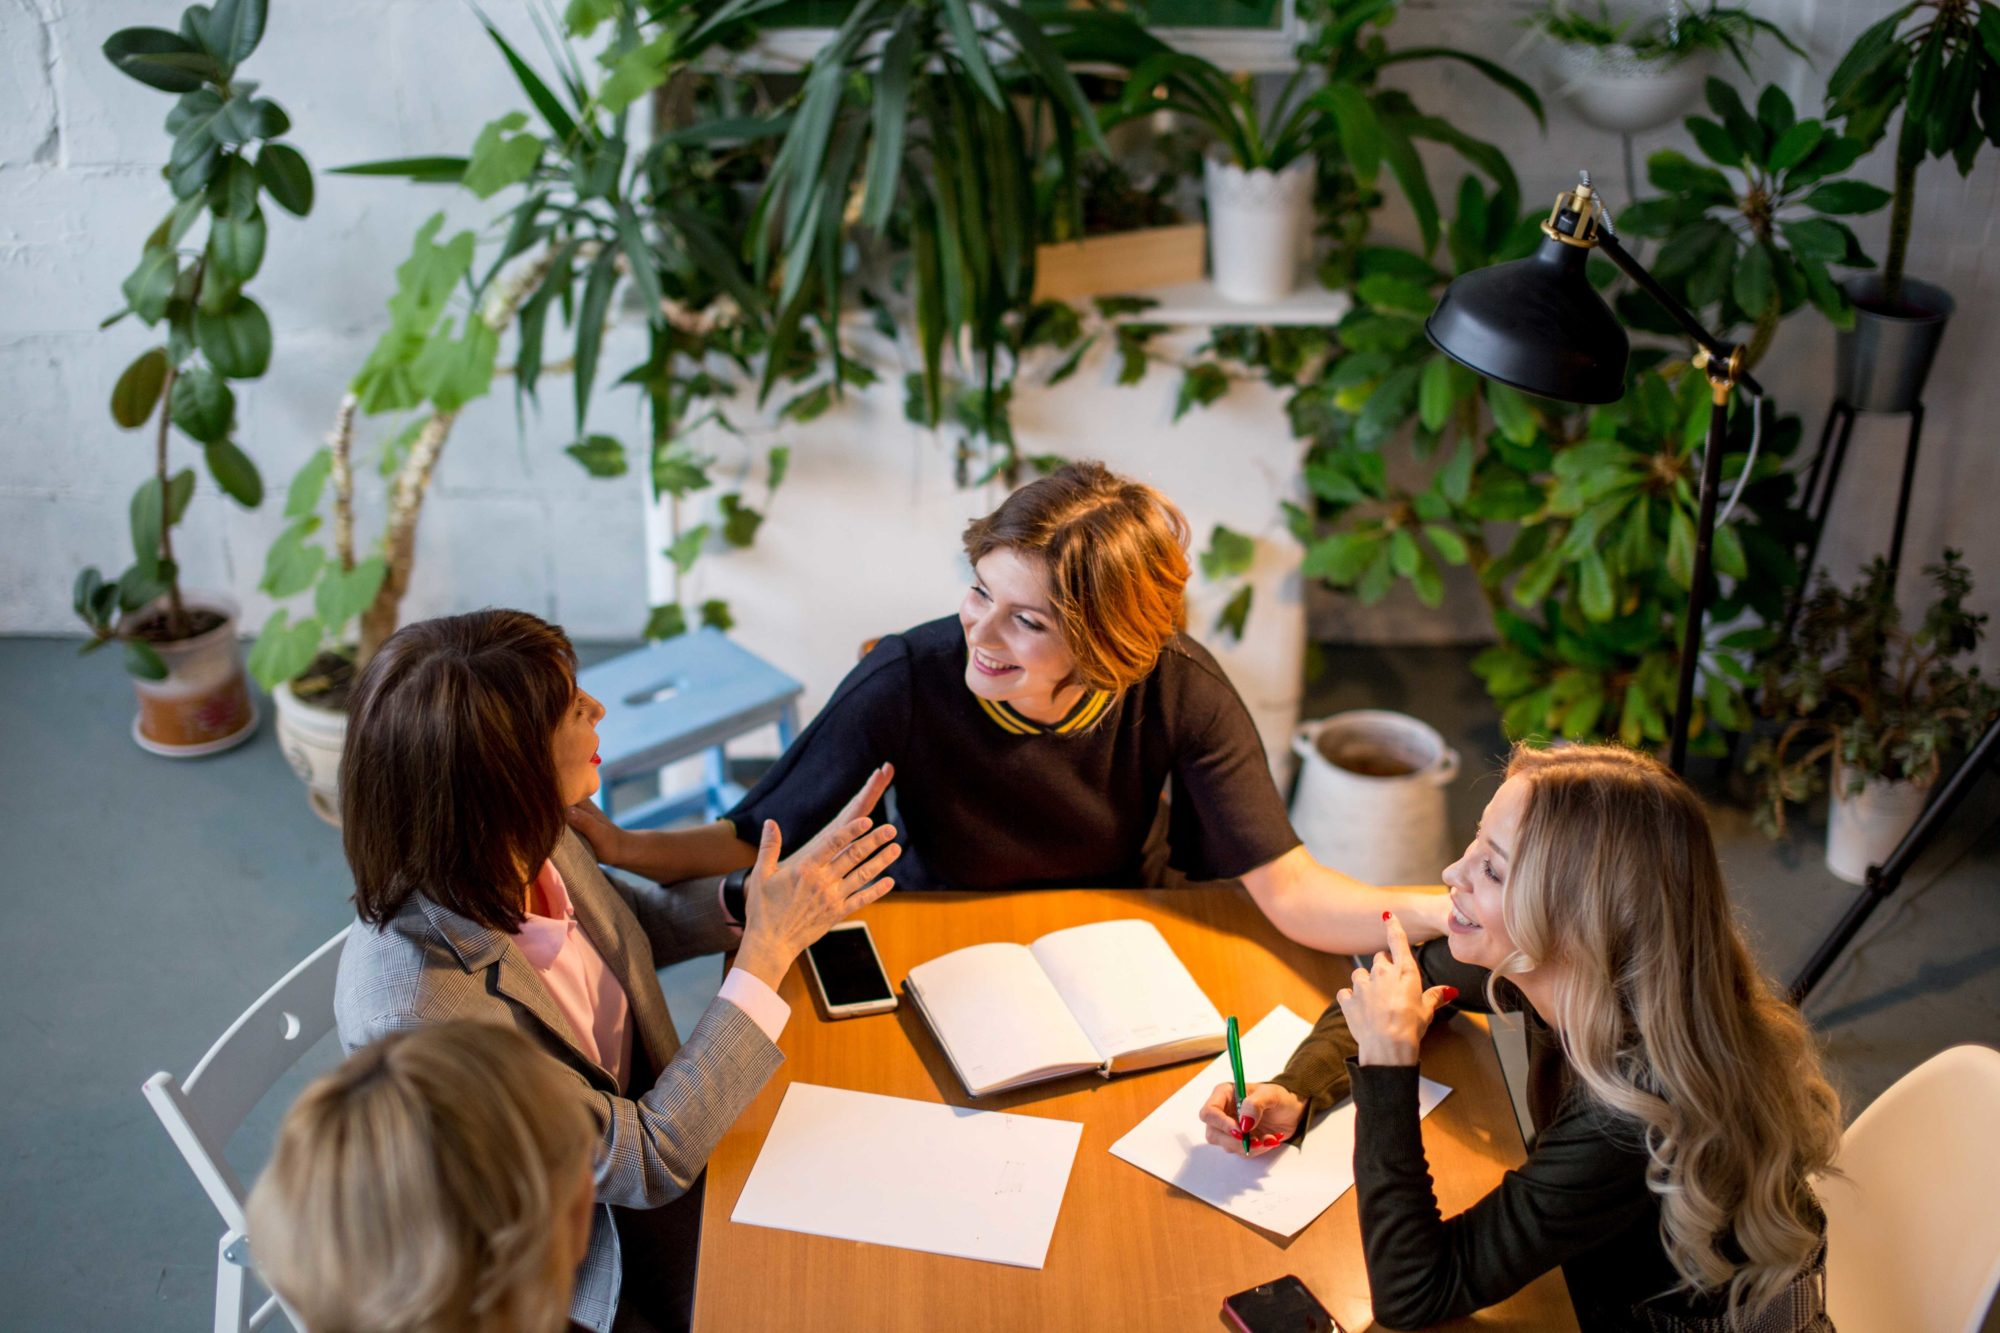 The Health Wellbeing Benefits Of Plants In The Office Making Moves